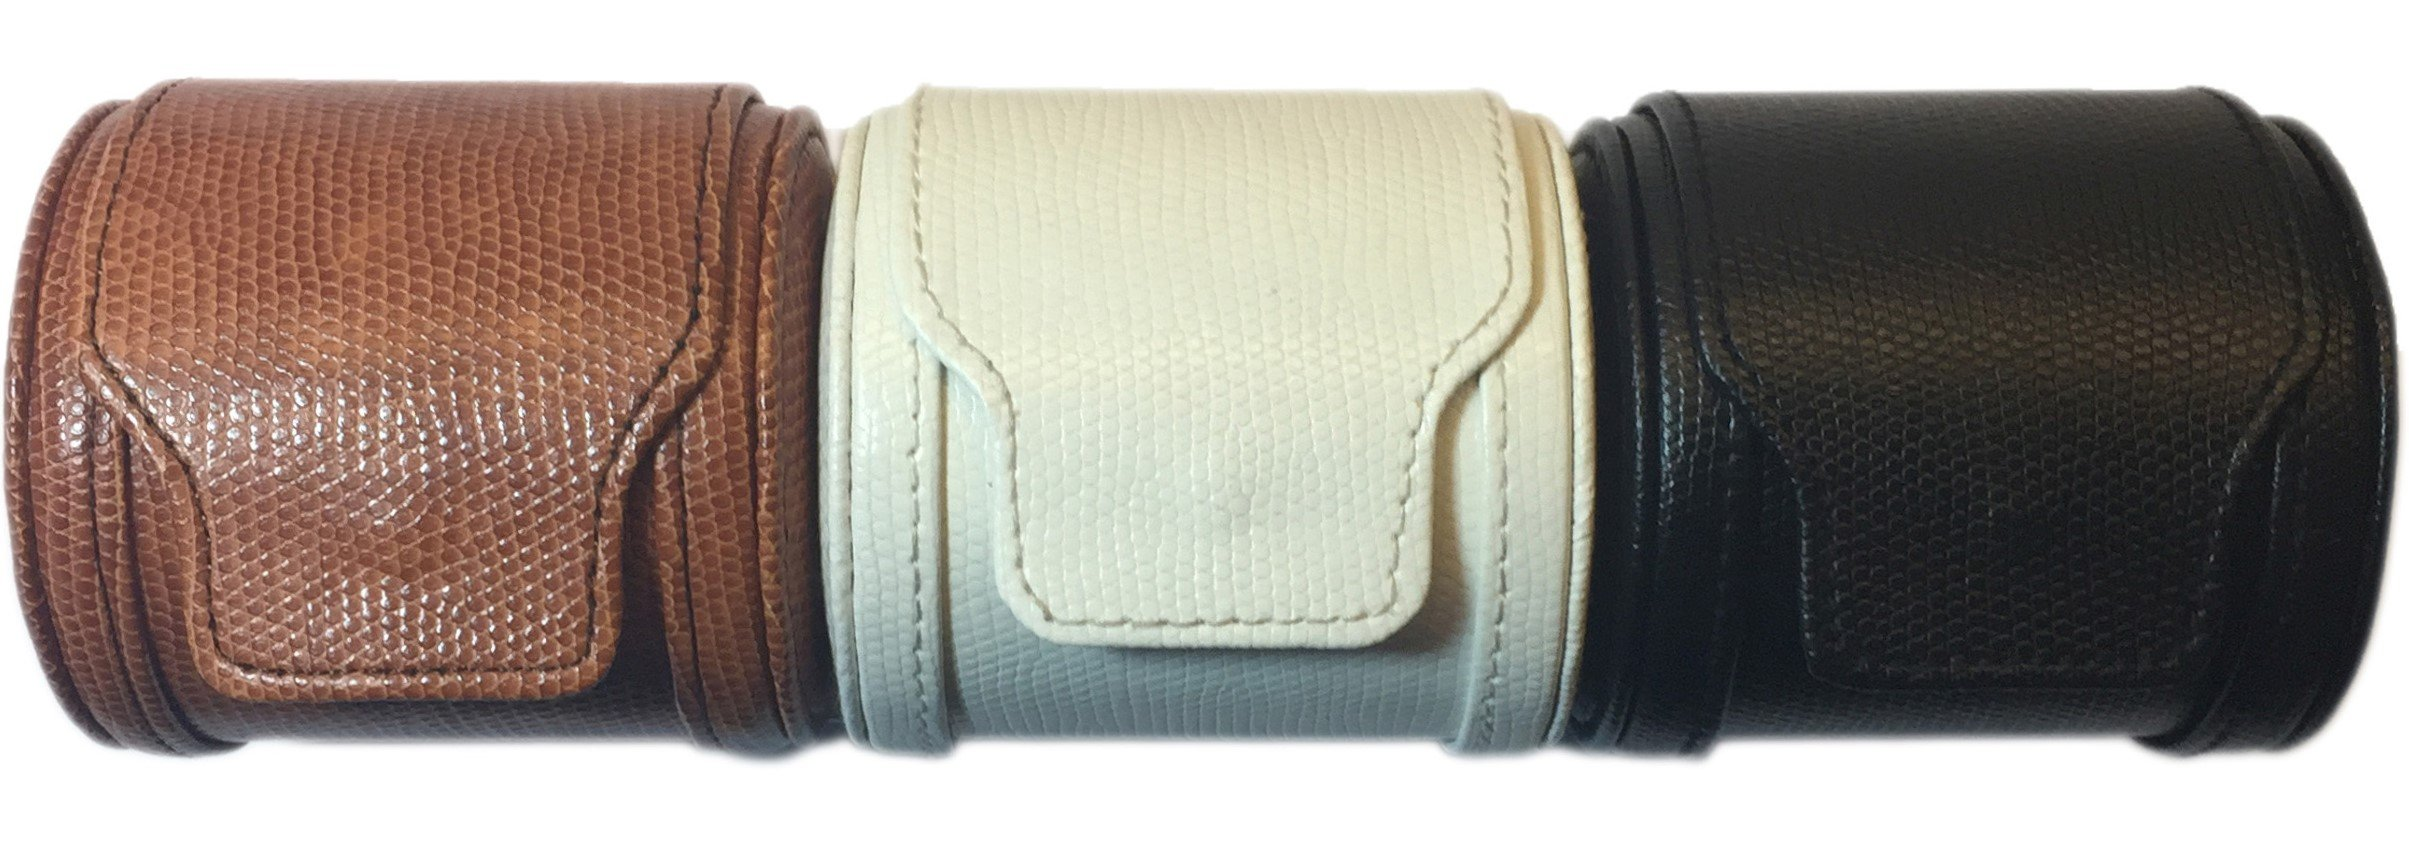 Single Travel Watch Case - Brown - Faux Leather